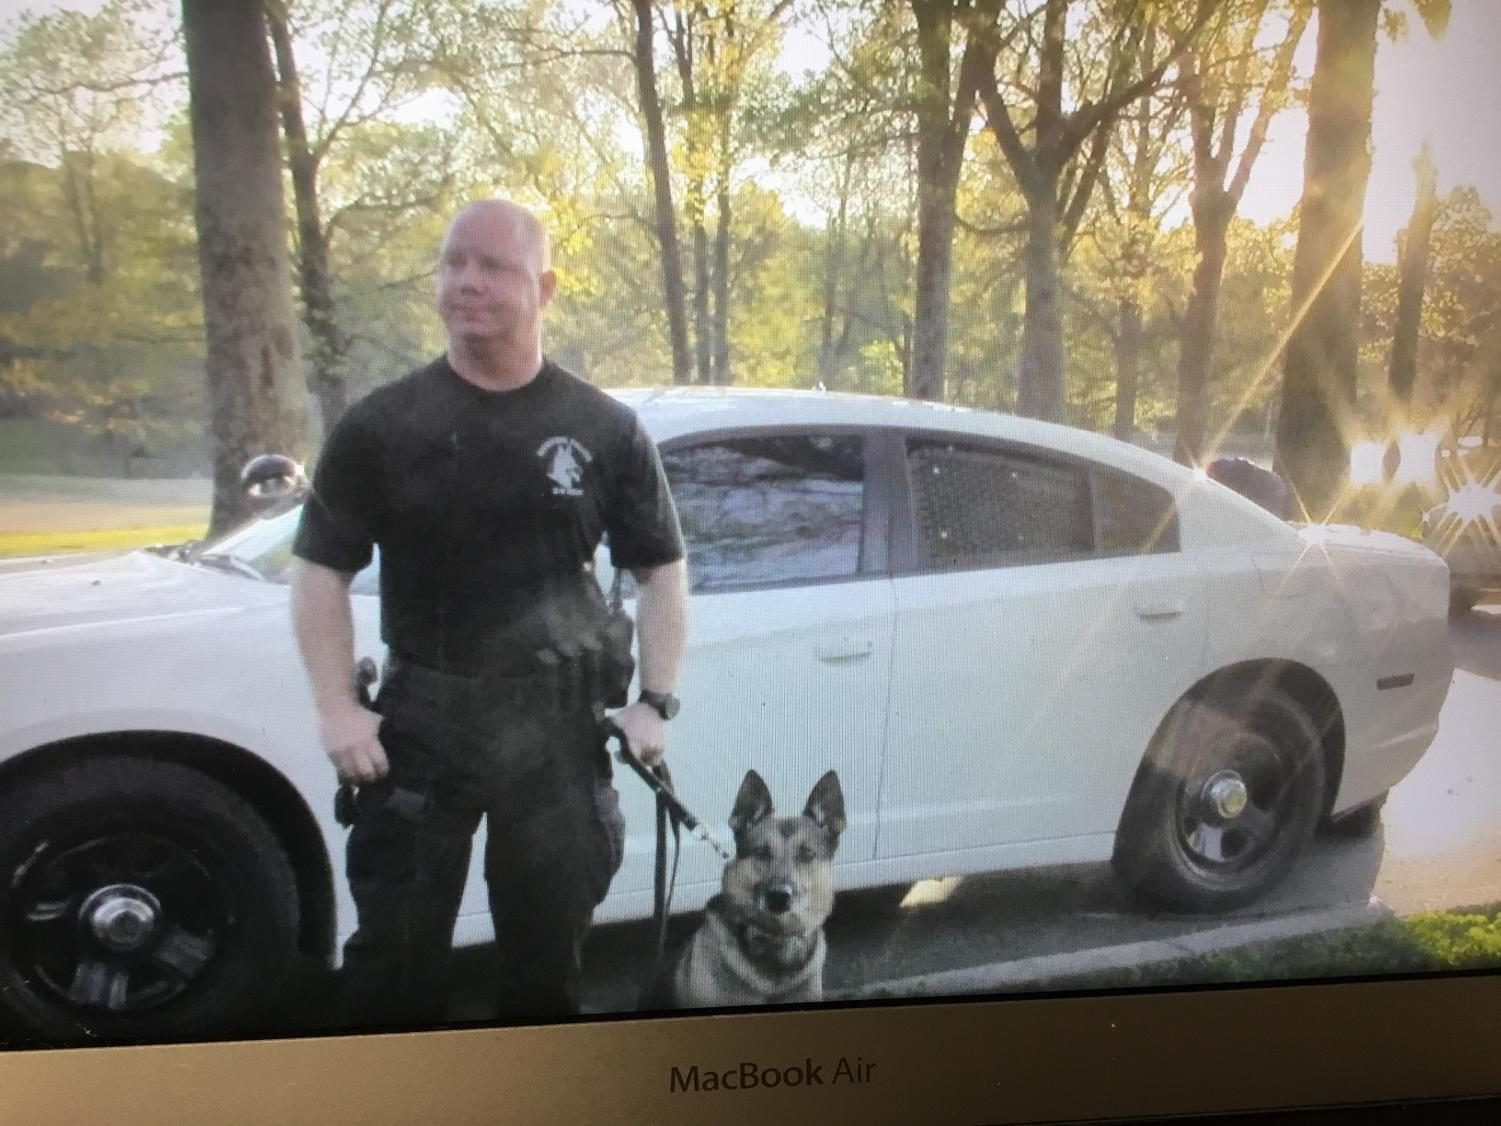 K9 Unit standing with his Partner